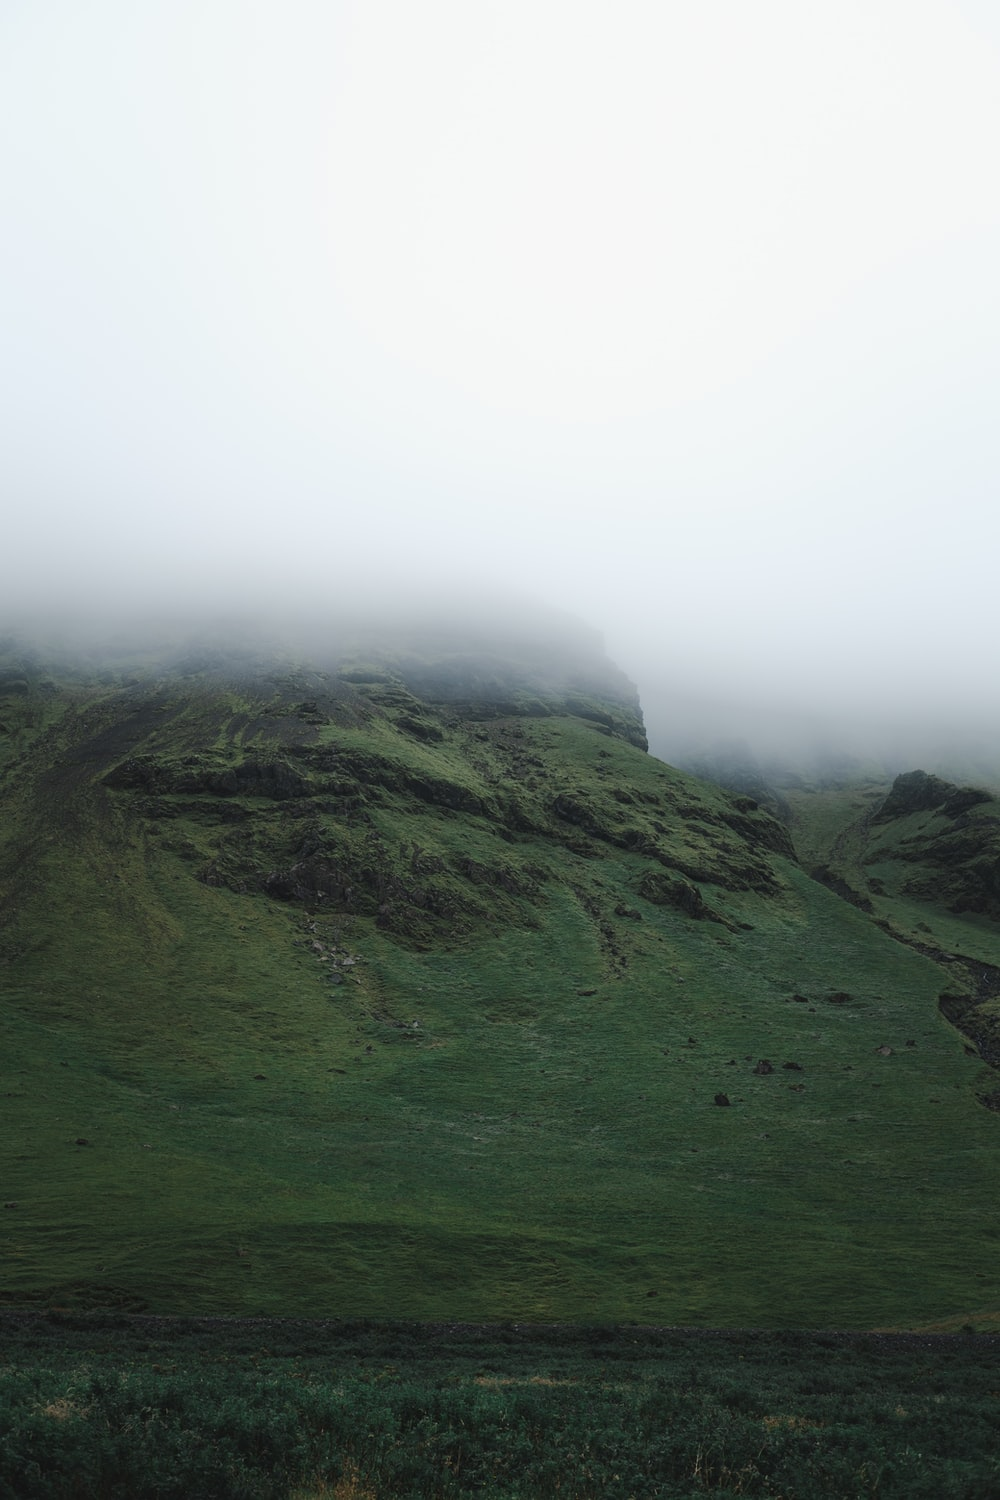 green grass covered mountain under white sky during daytime